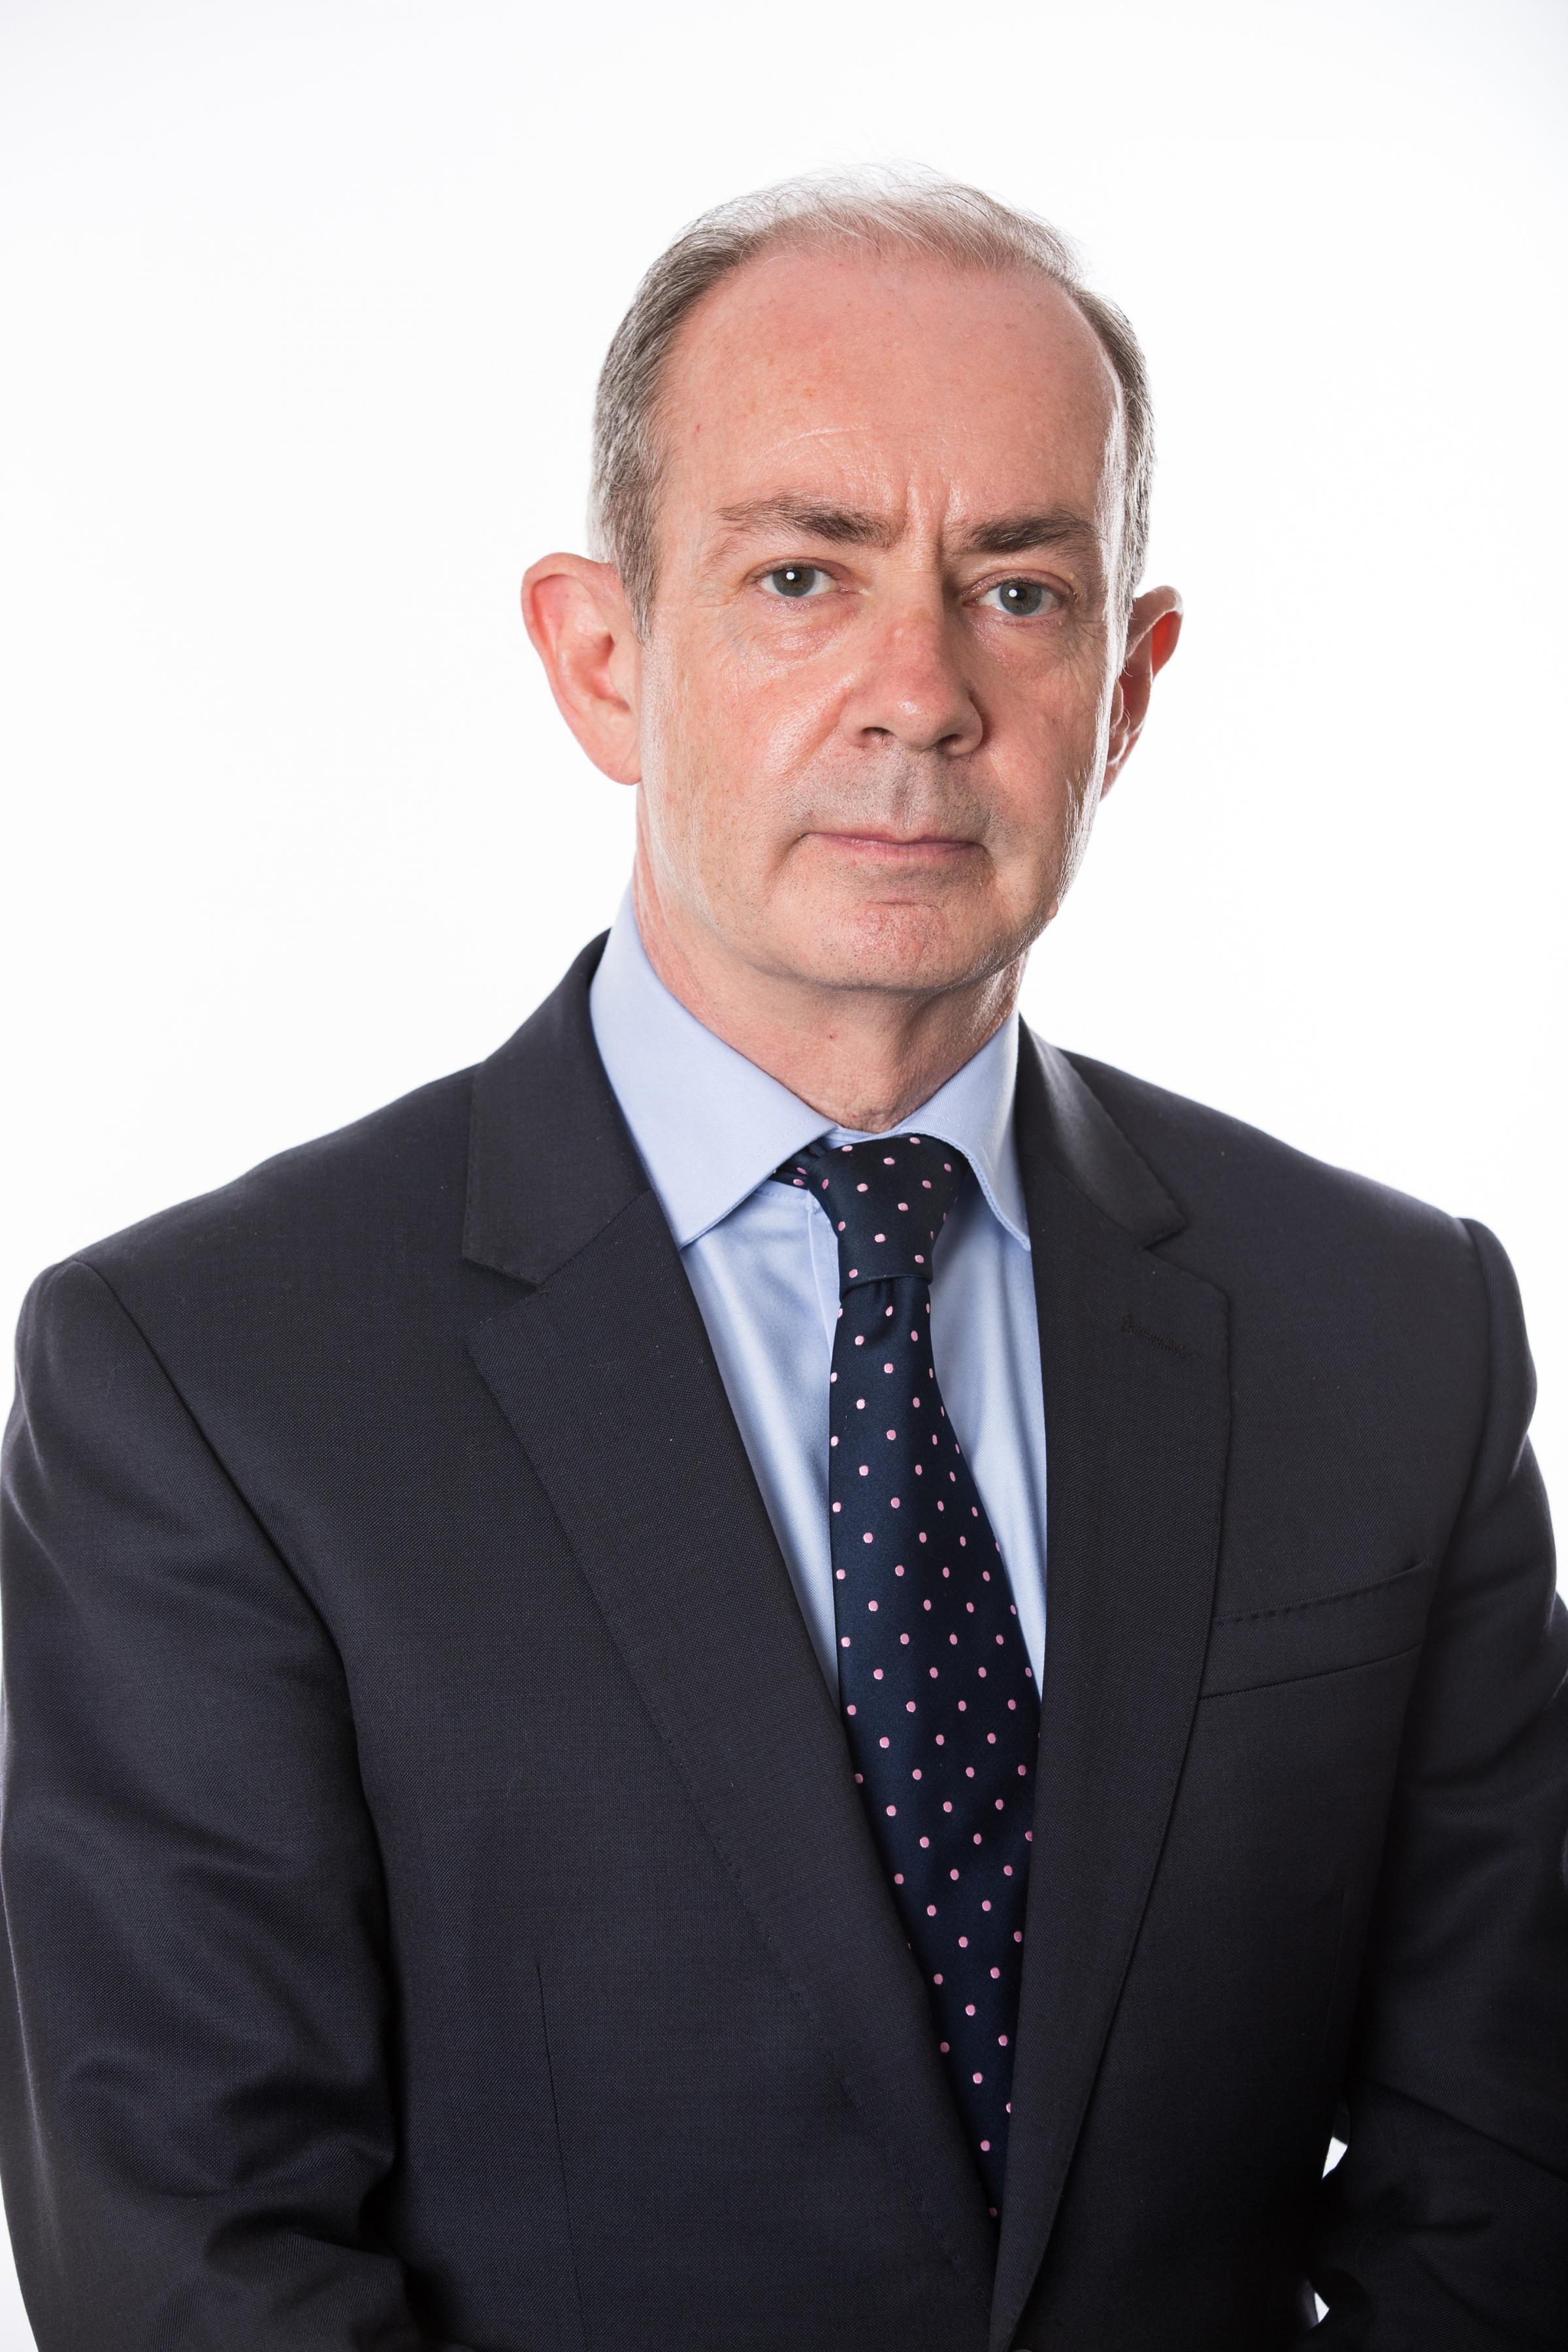 Michael Delaney is an employment law partner at award-winning law firm VWV, which has offices in Clarendon Road, Watford